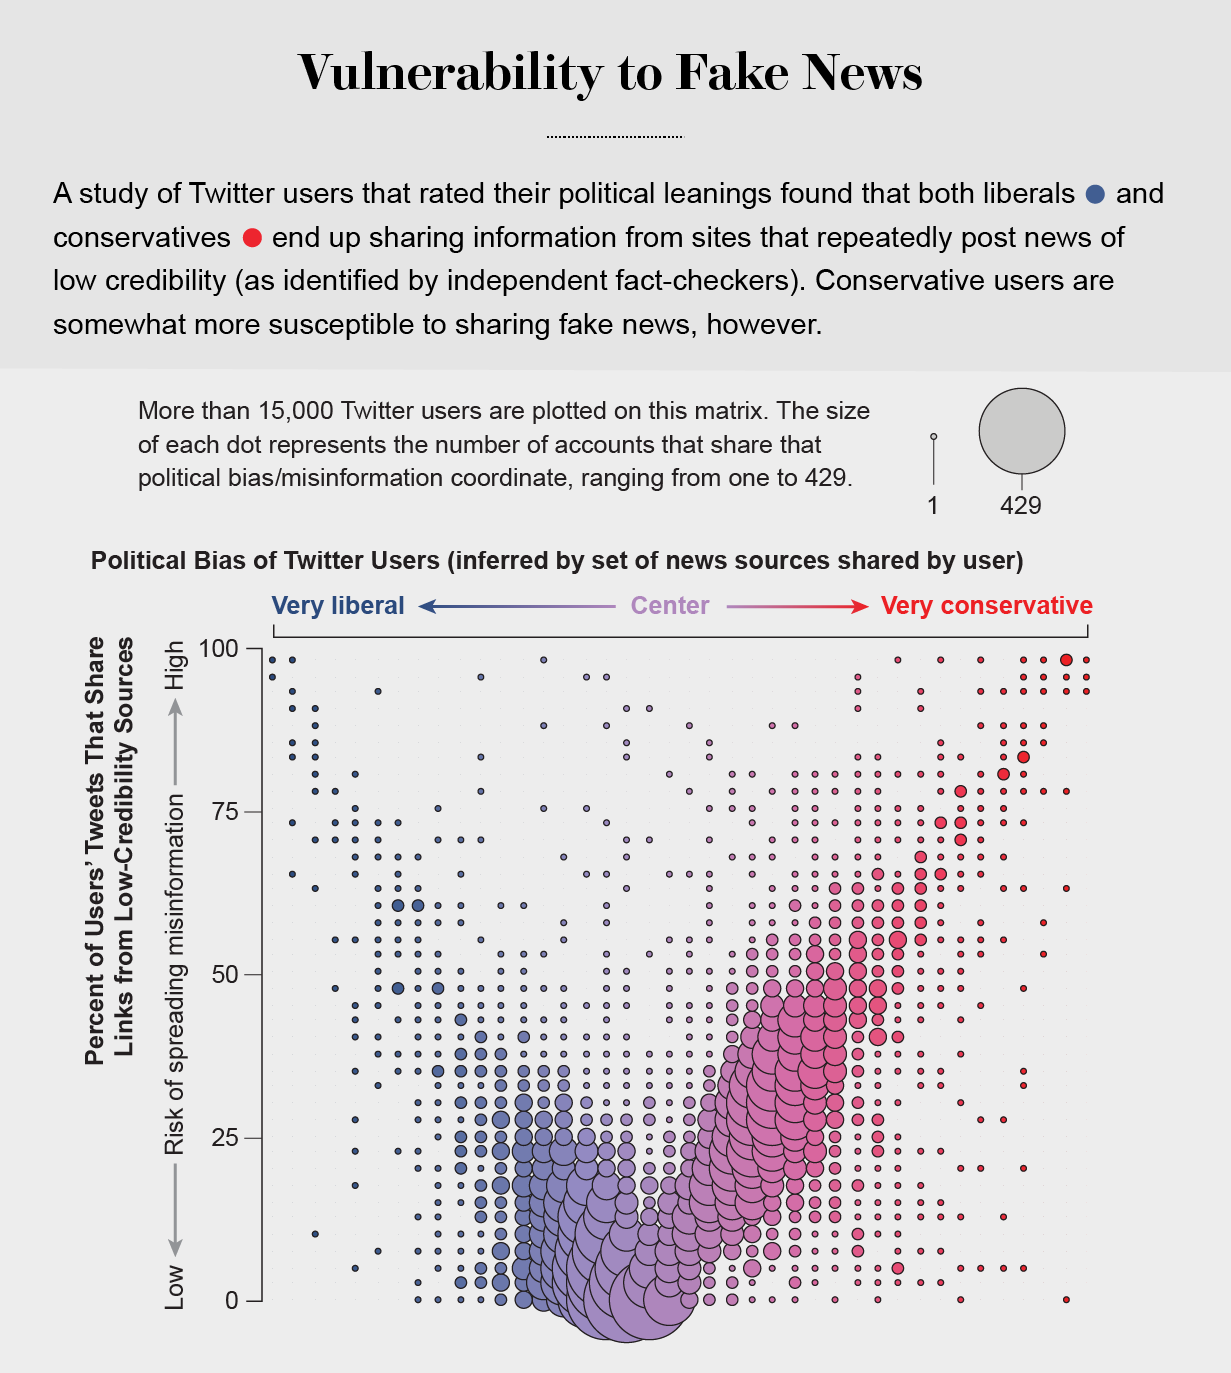 Twitter users with extreme political views are more likely than moderate users to share information from low credibility sources